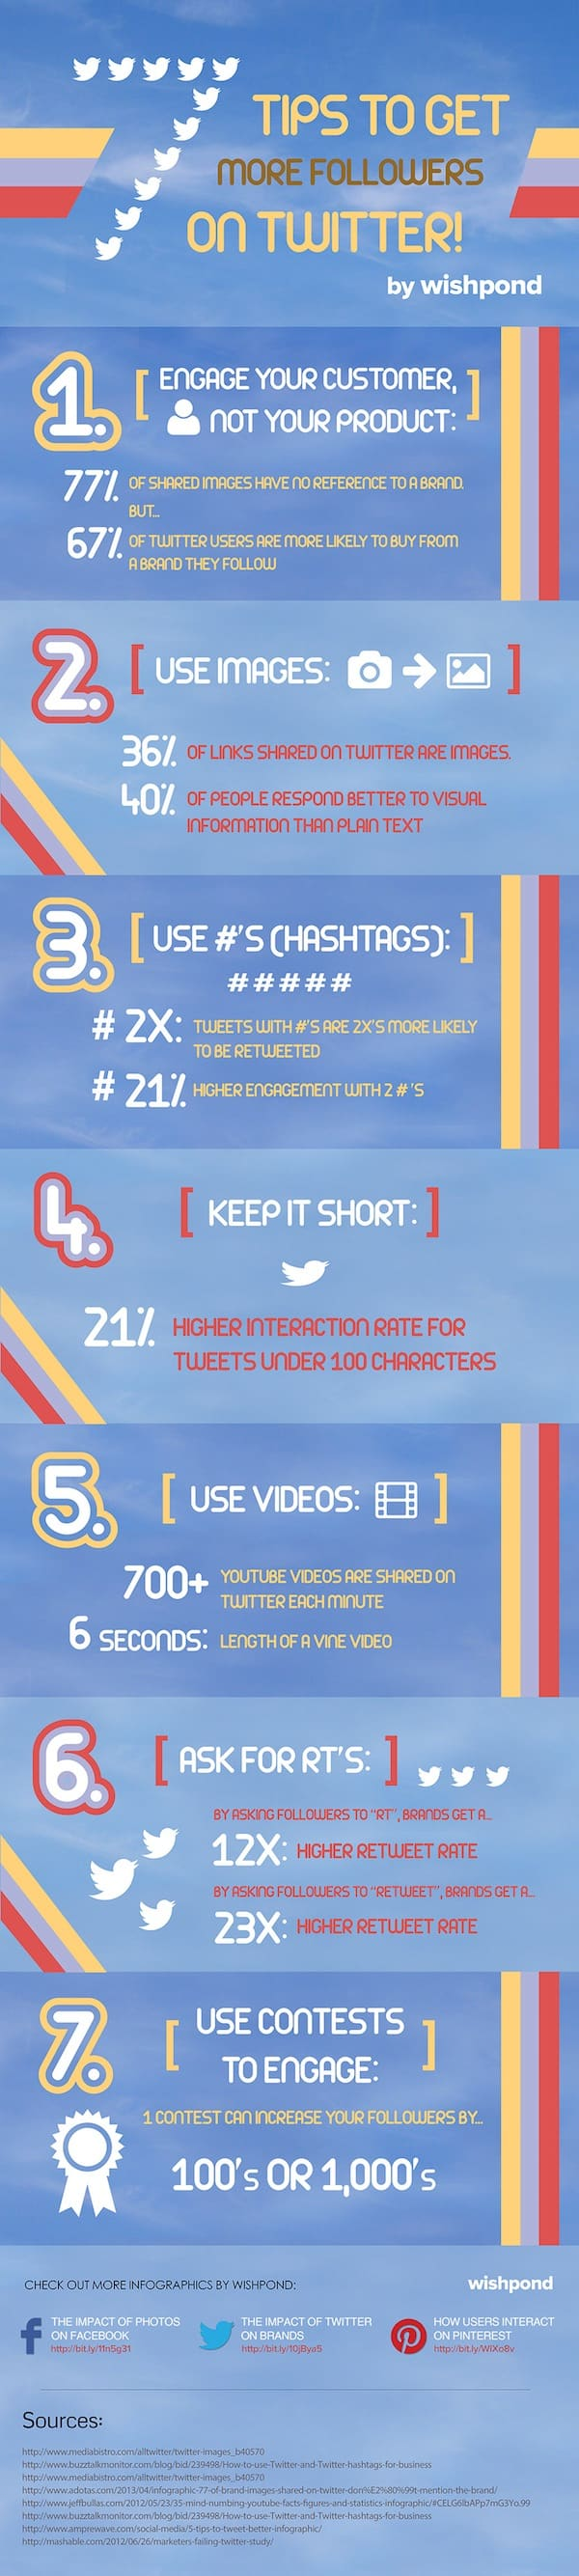 7 astuces twitter